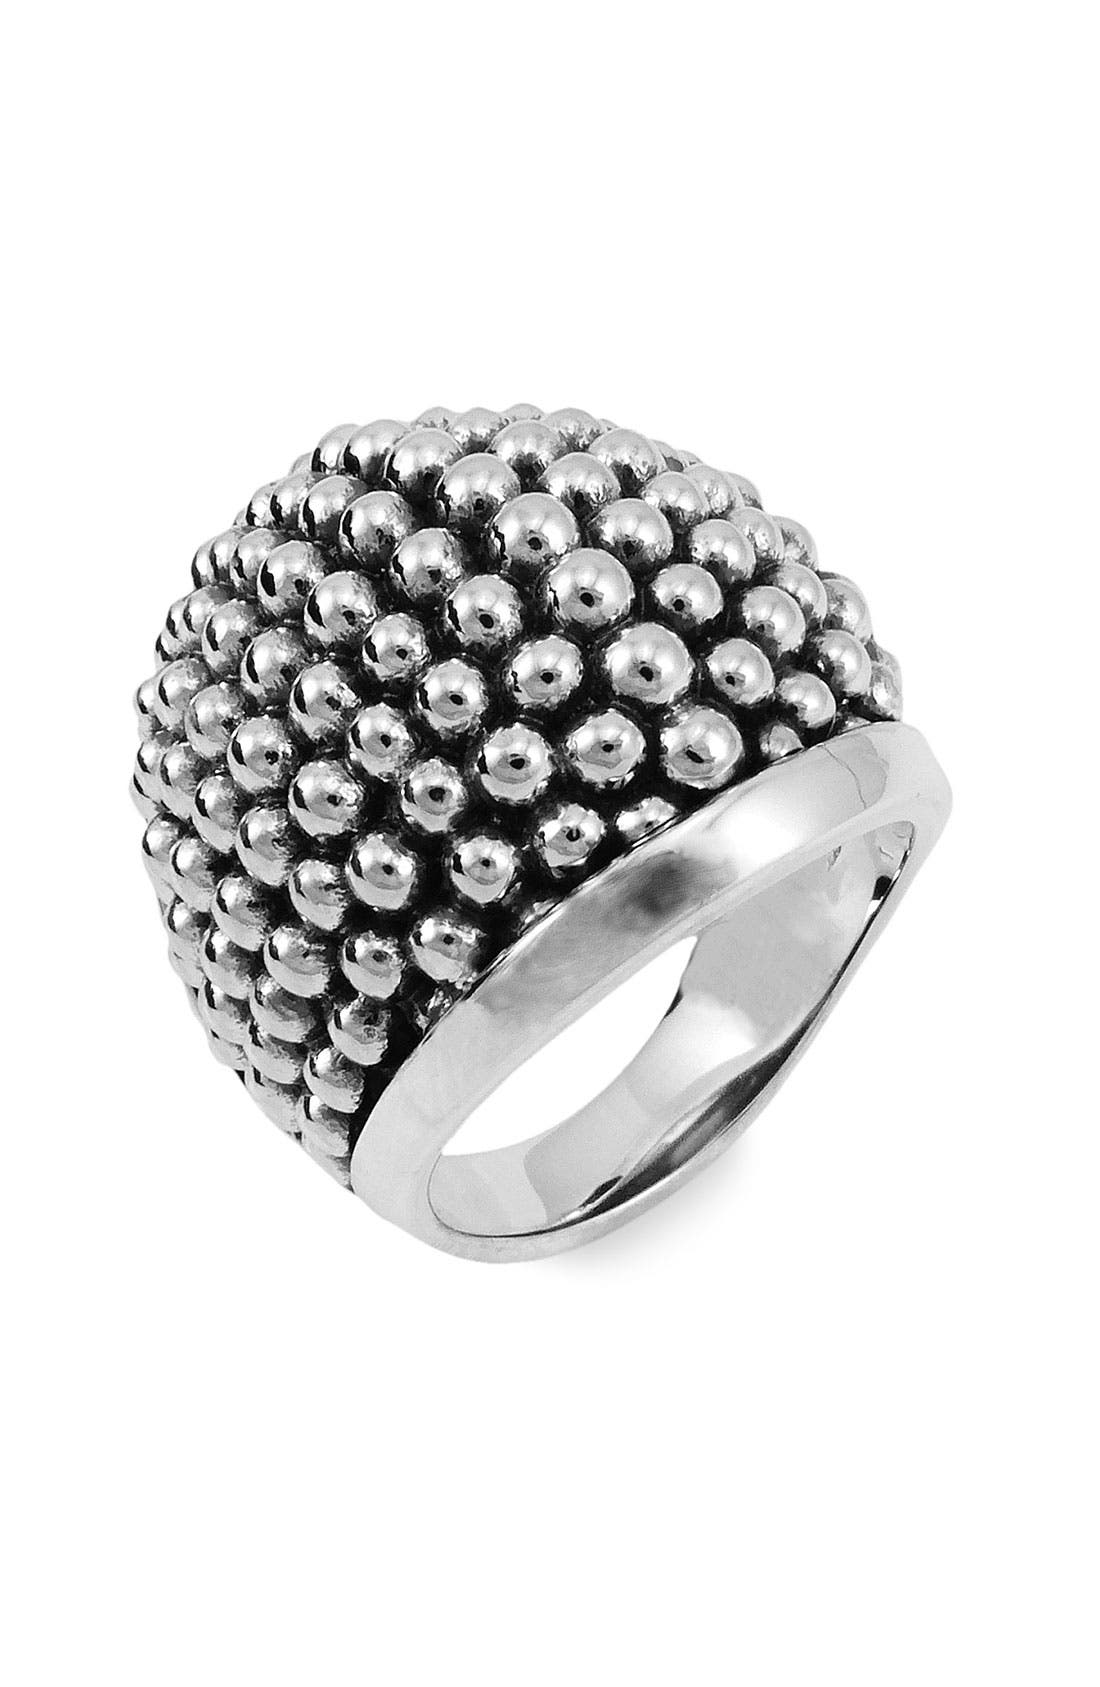 Main Image - LAGOS Sterling Silver Caviar Dome Ring